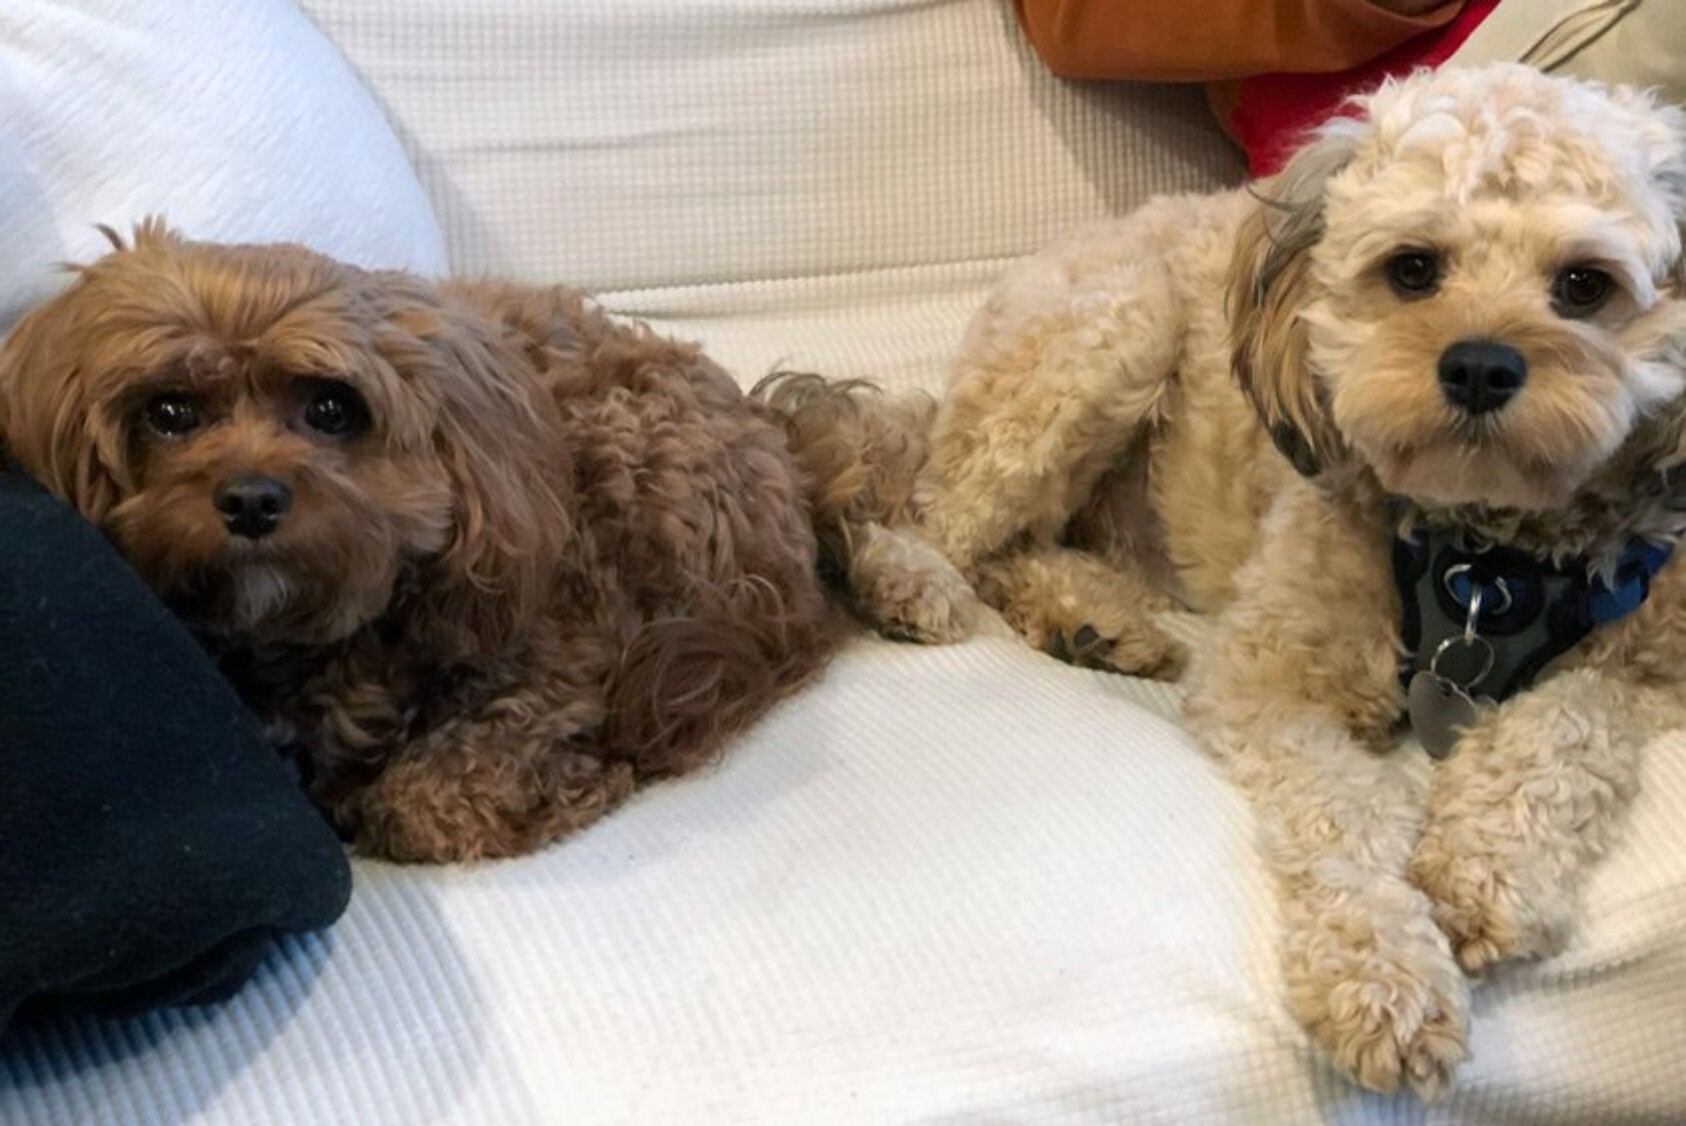 """""""That's Seymour on the right, who joined us in April. He just turned one year old on January 31. He and his older sister, Maeby (on the left), are both Cavapoos. They are the sweetest dogs and have helped keep us sane during the pandemic."""" —Bob Feinberg '84, East Hampton, NY"""